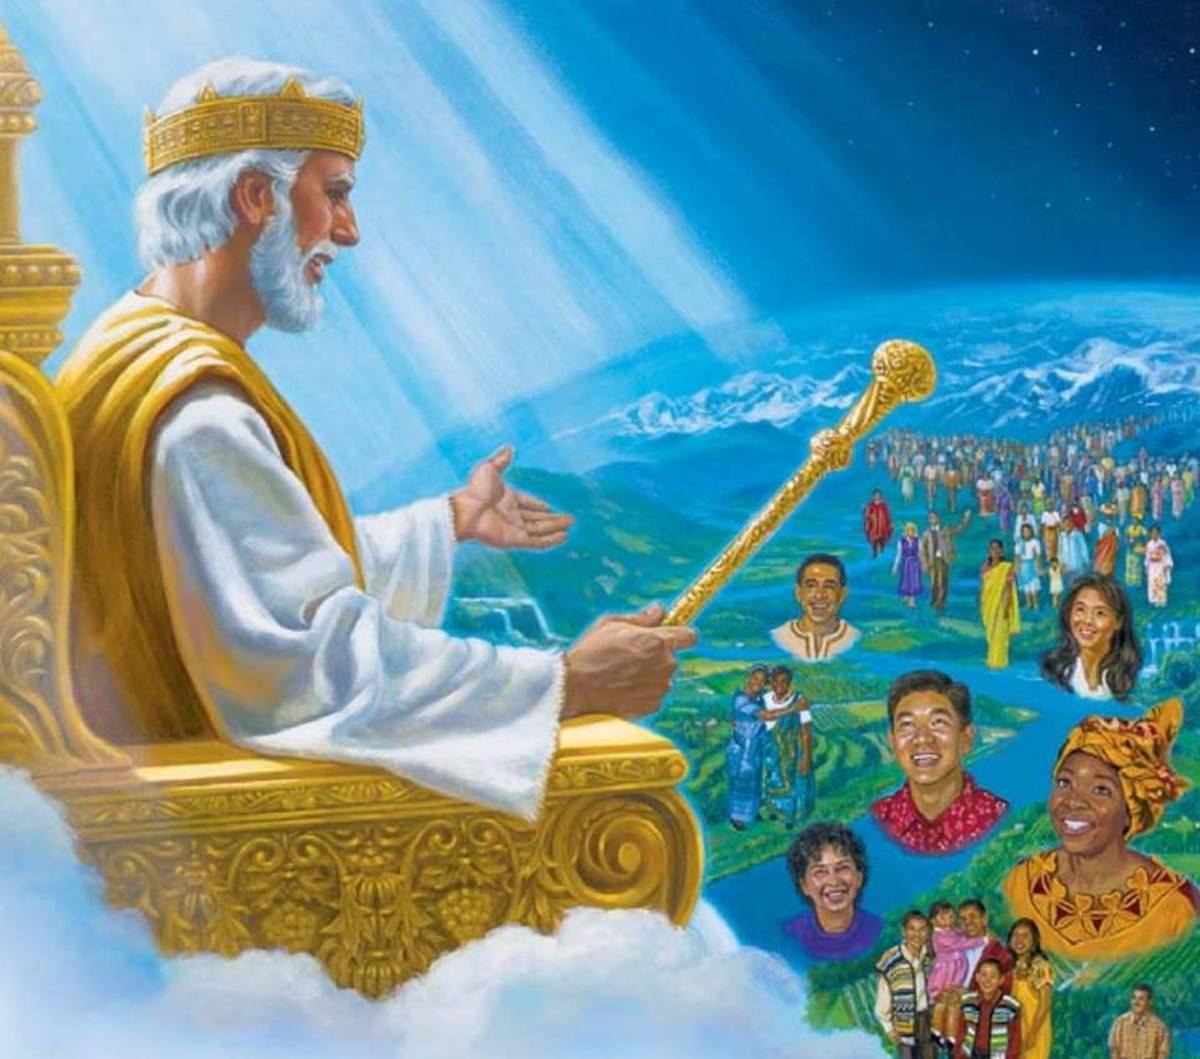 Was Jesus Enthroned King in 1914 C.e as Jehovah's Witnesses Teach?